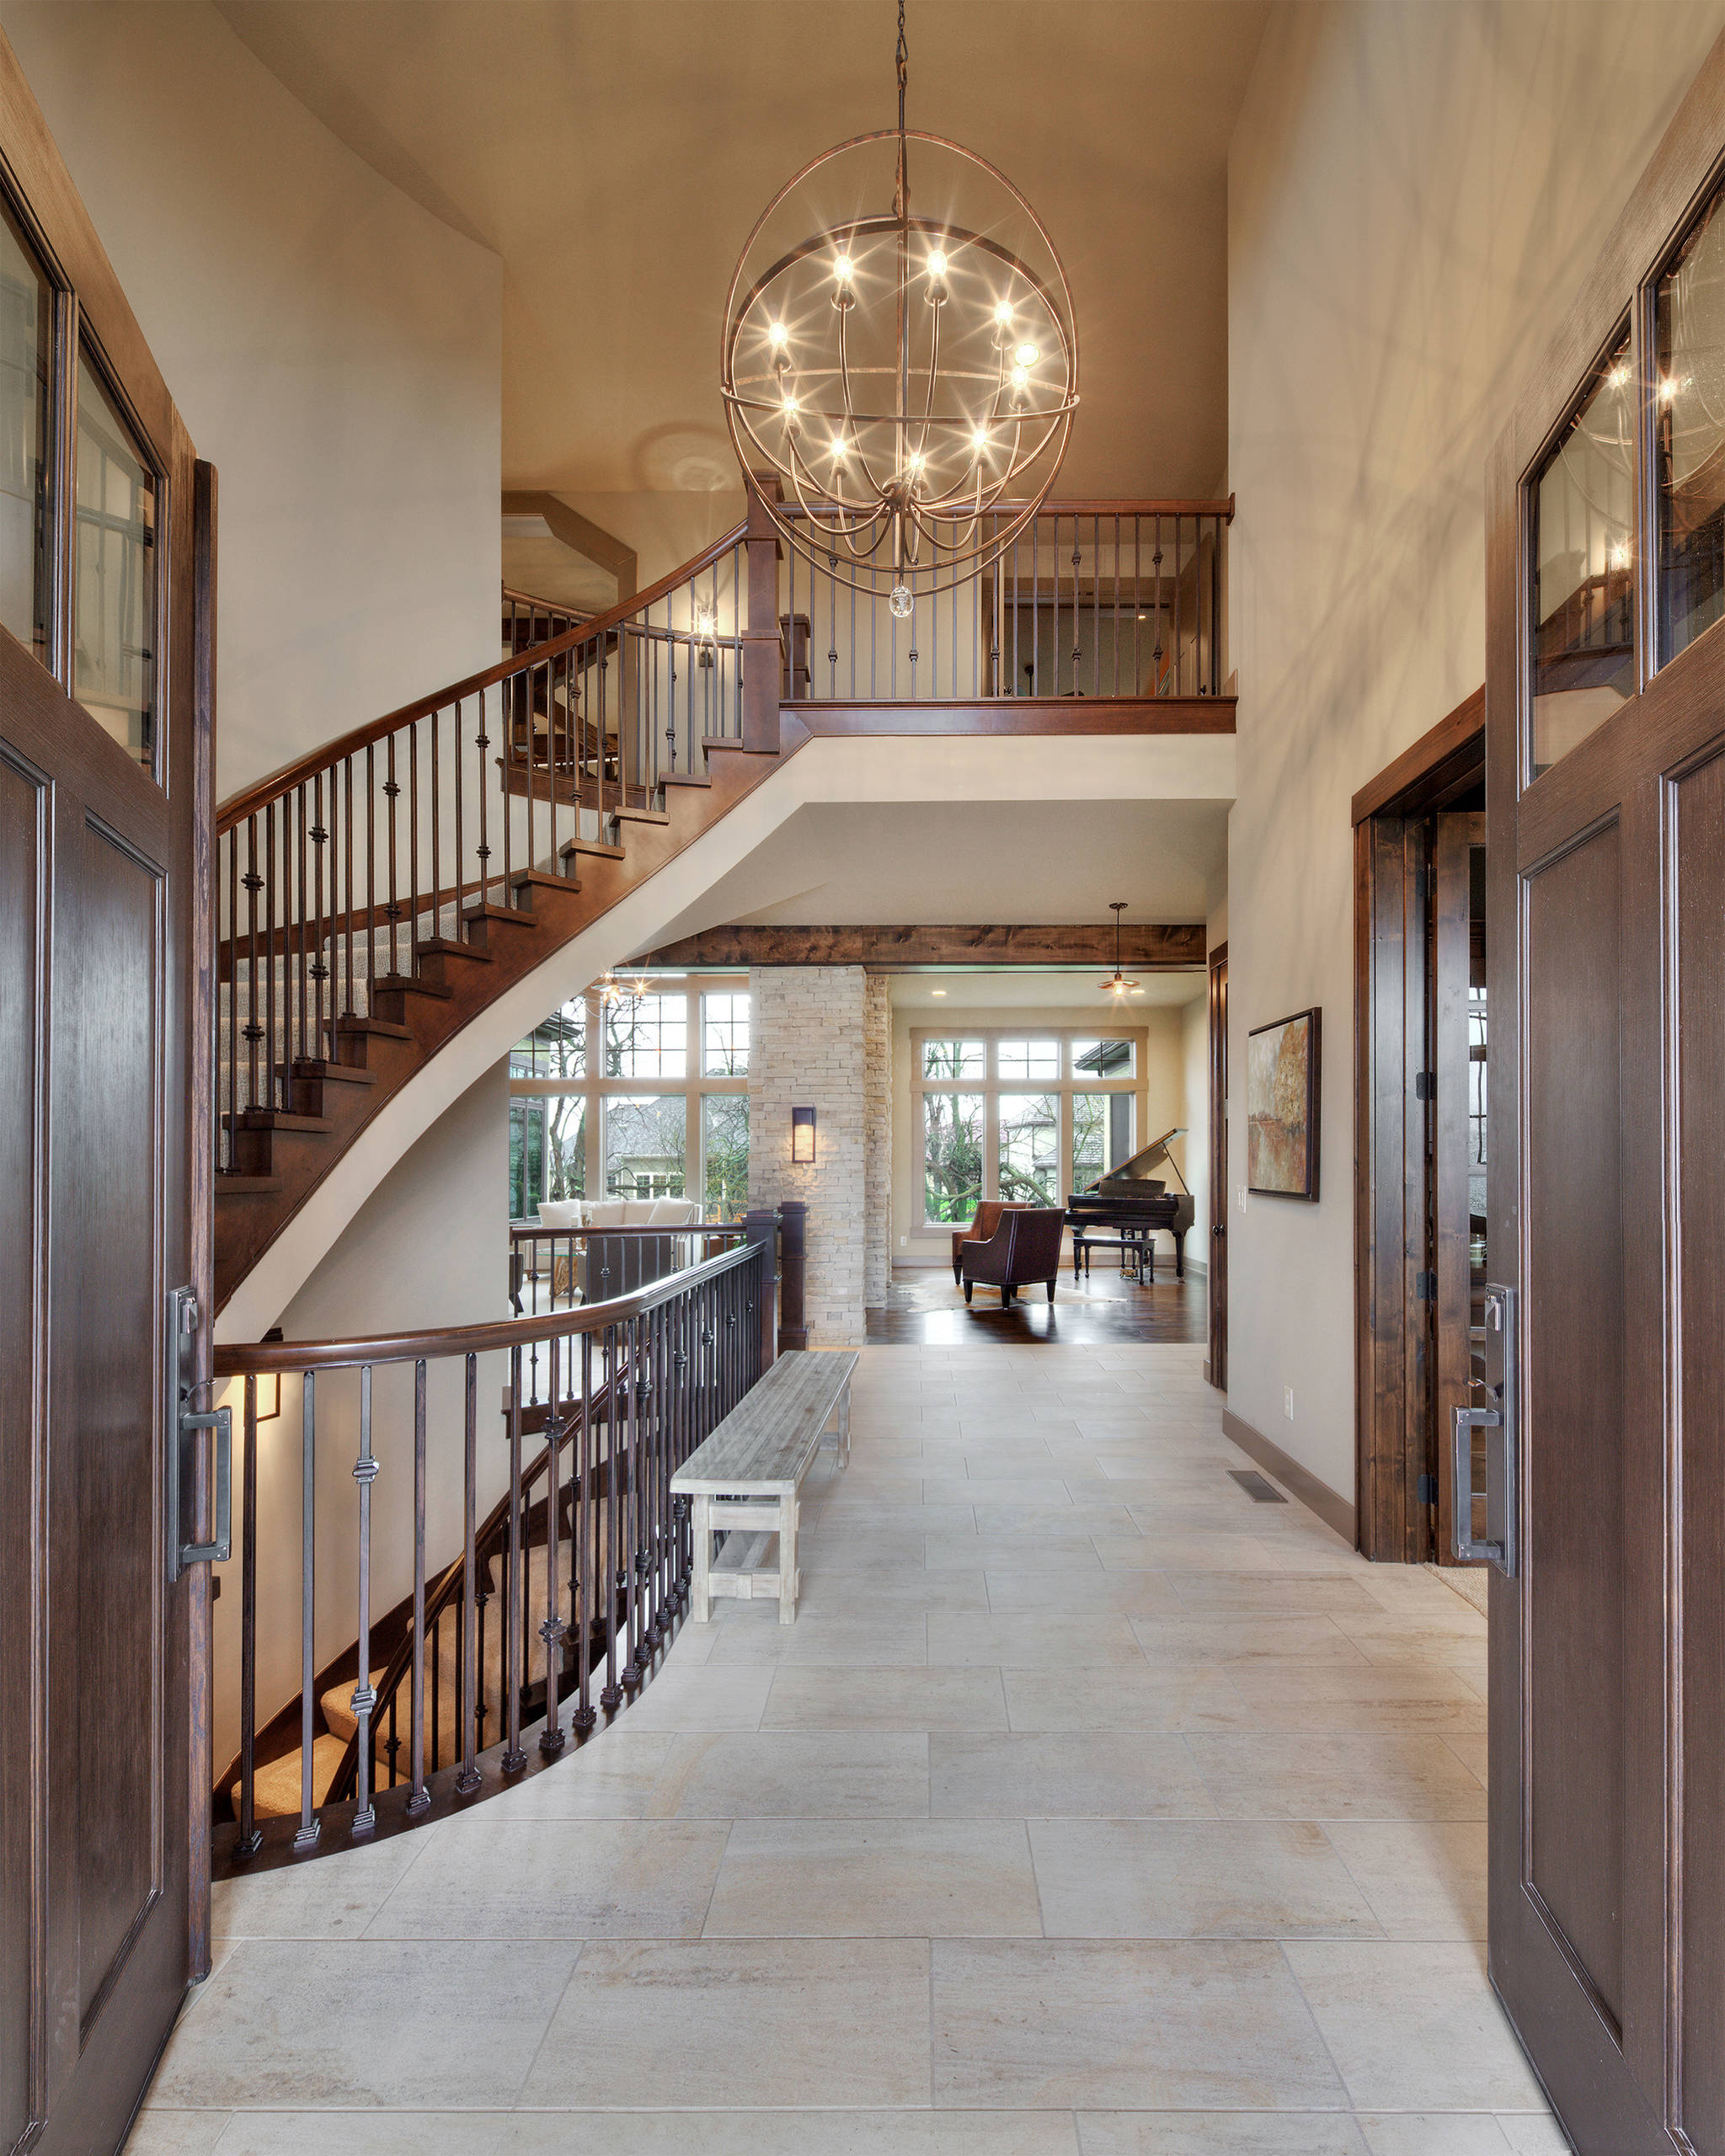 Home Entrance Design: 16 Uplifting Mediterranean Entry Hall Designs That Will